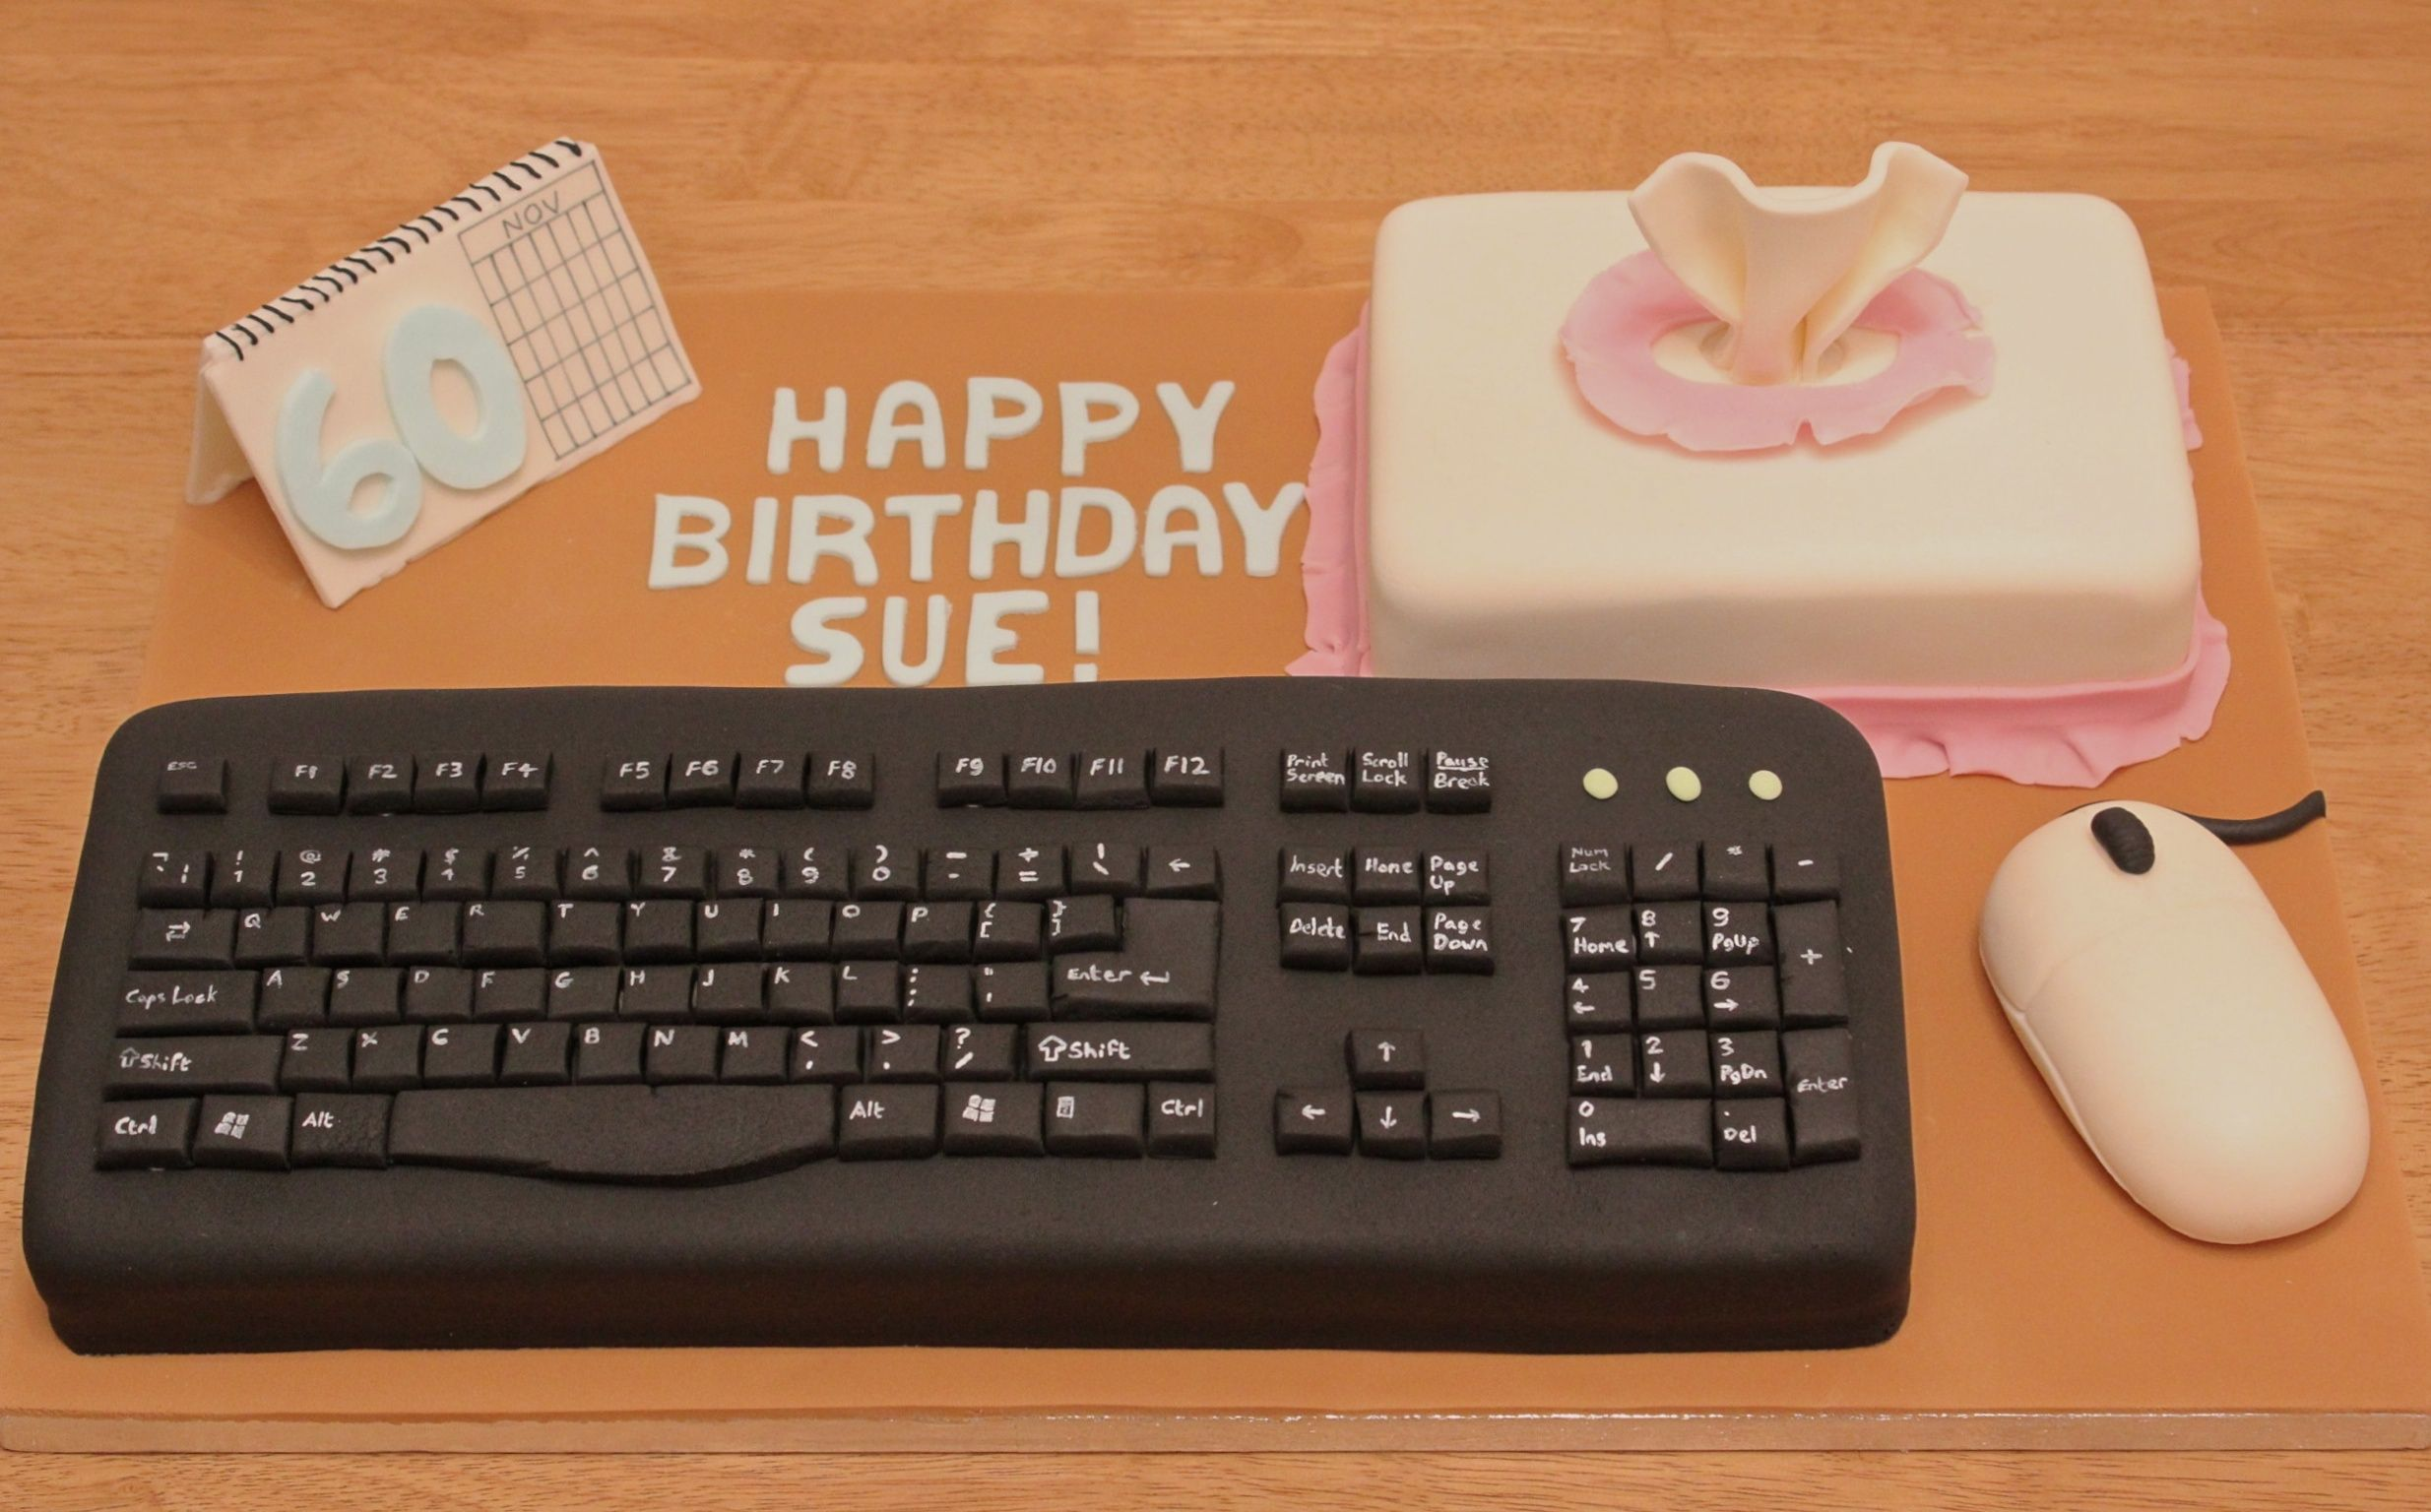 A computer keyboard cake for a typist colleague.